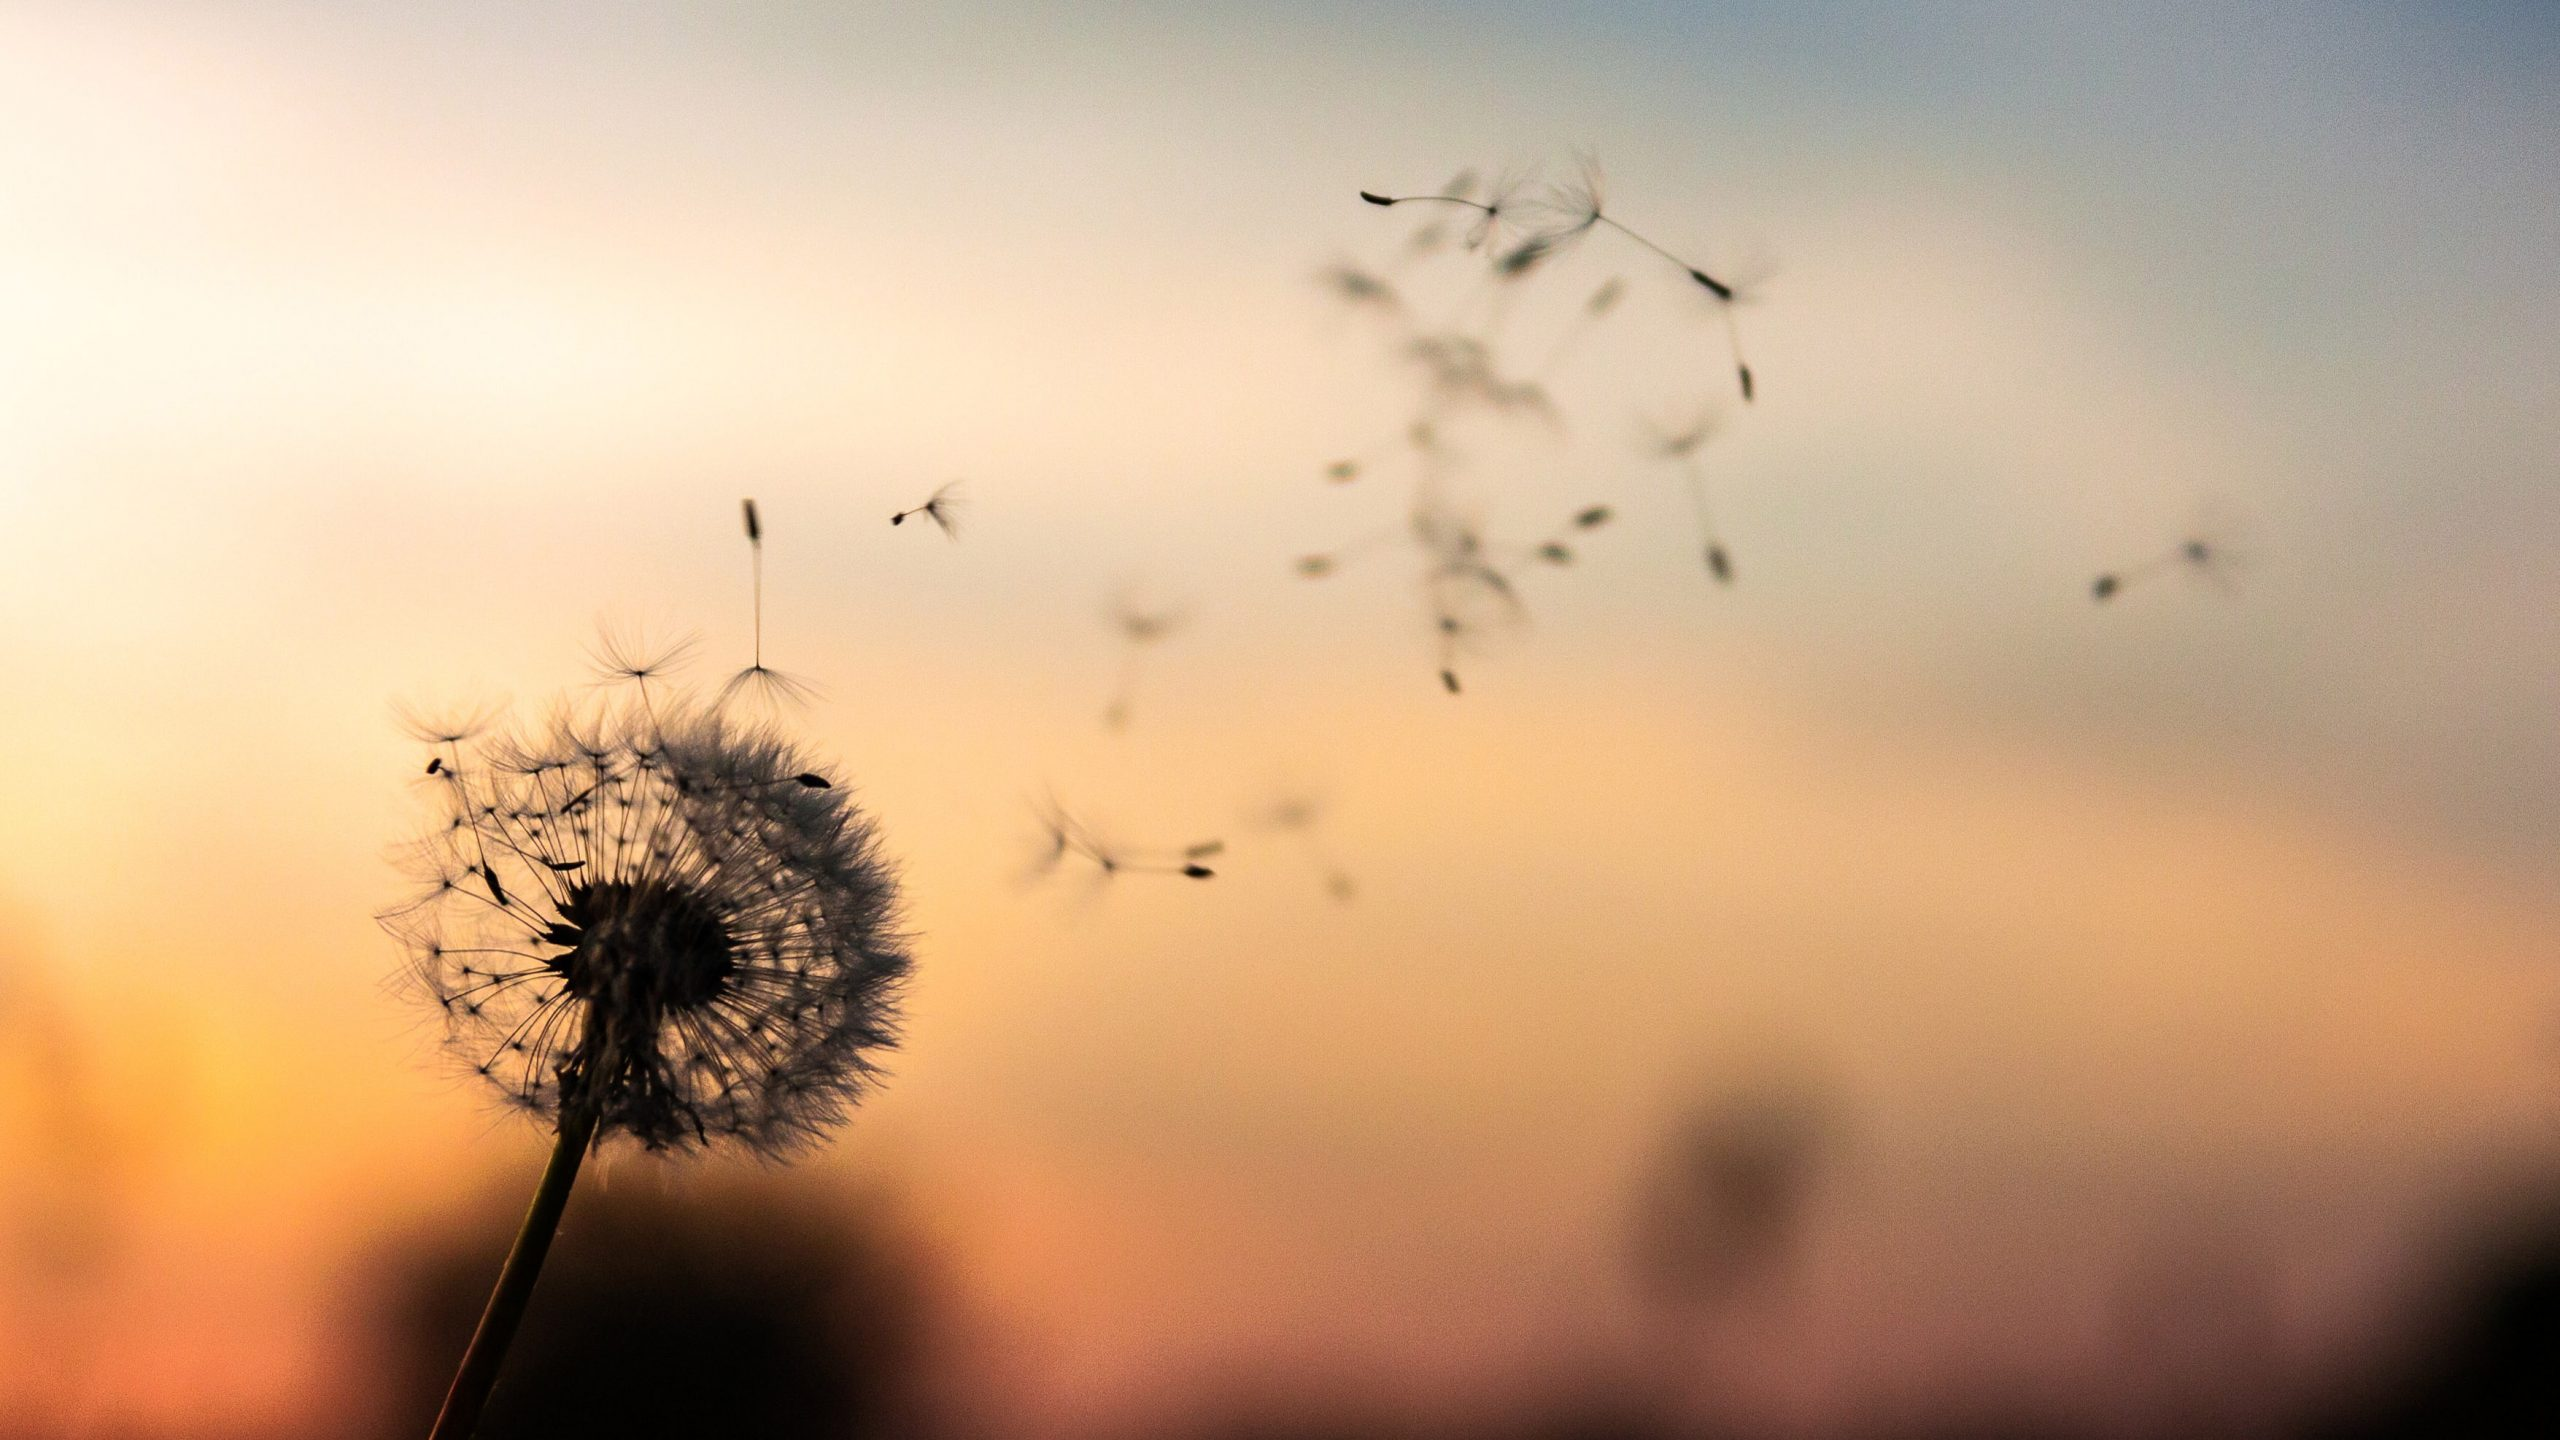 A dandelion being blown in the breeze